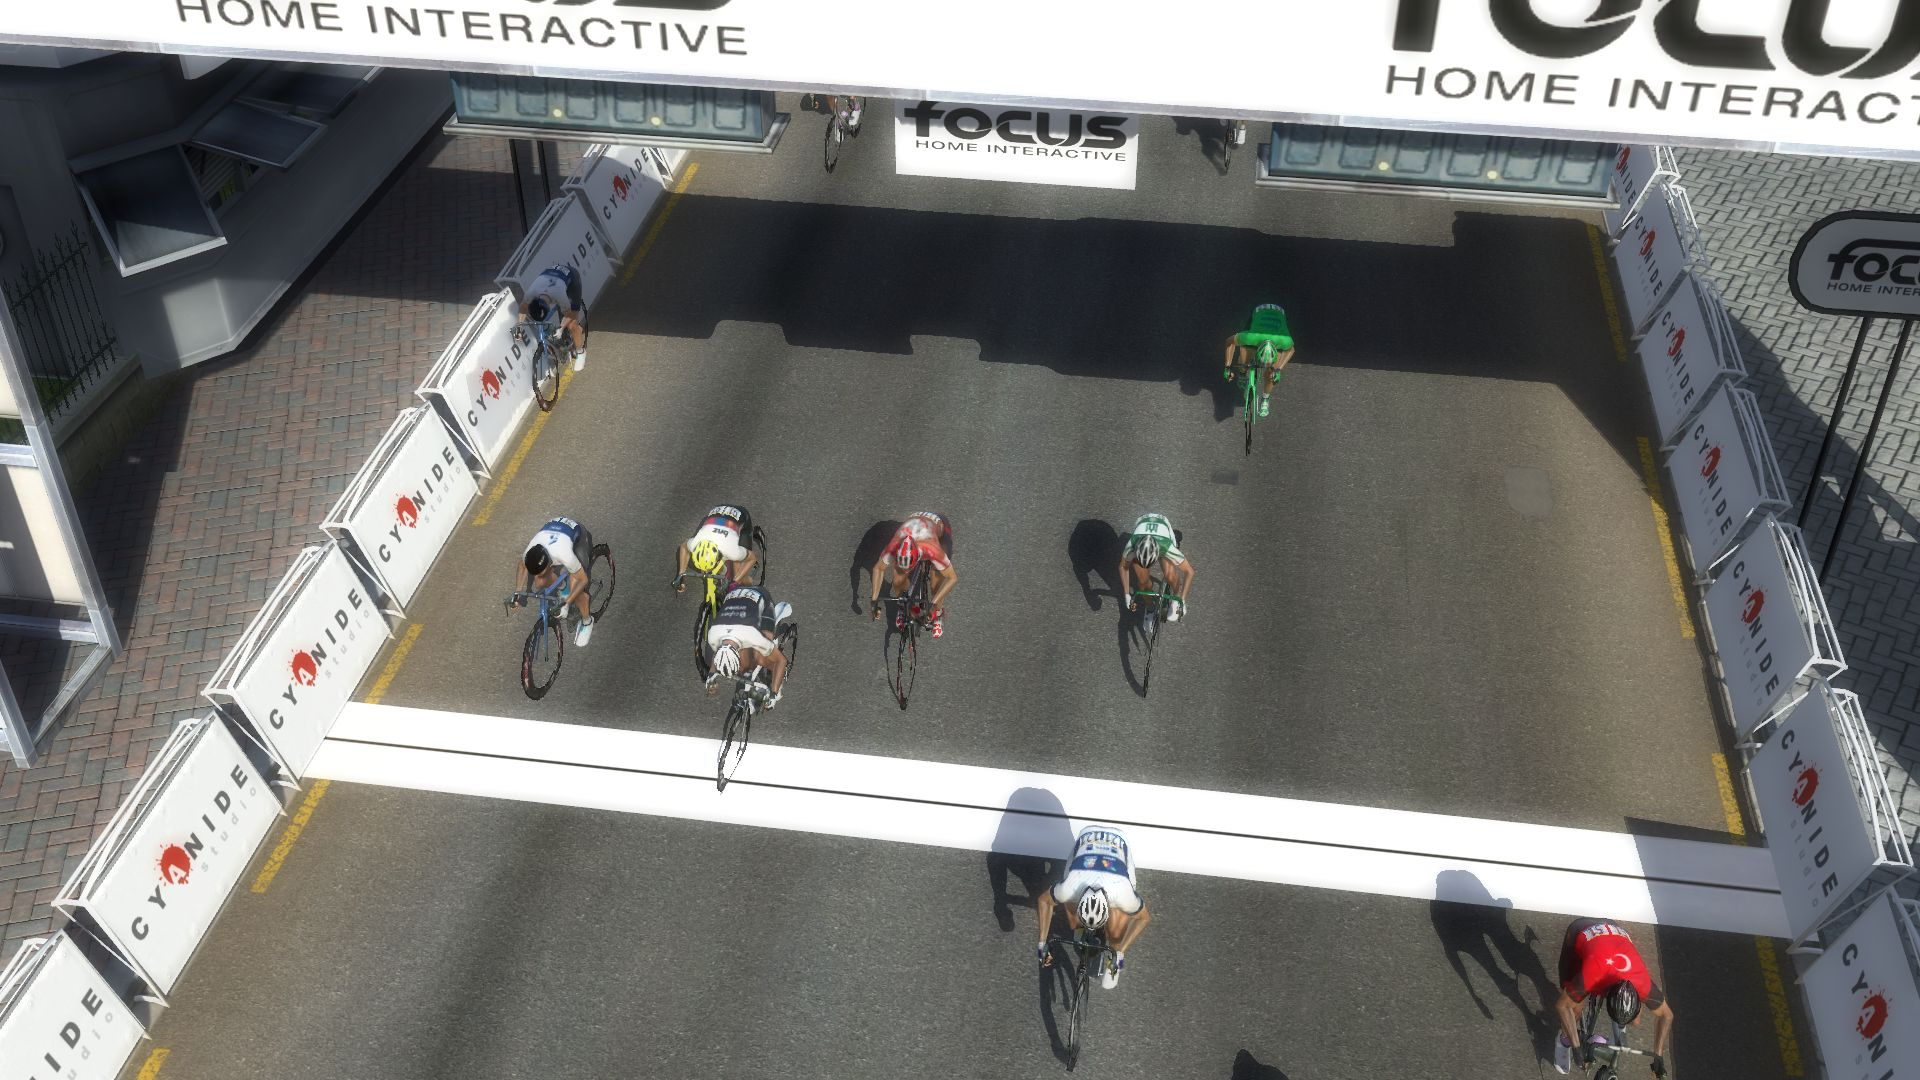 pcmdaily.com/images/mg/2019/Races/C2HC/Eritrea/TOES1%2024.jpg